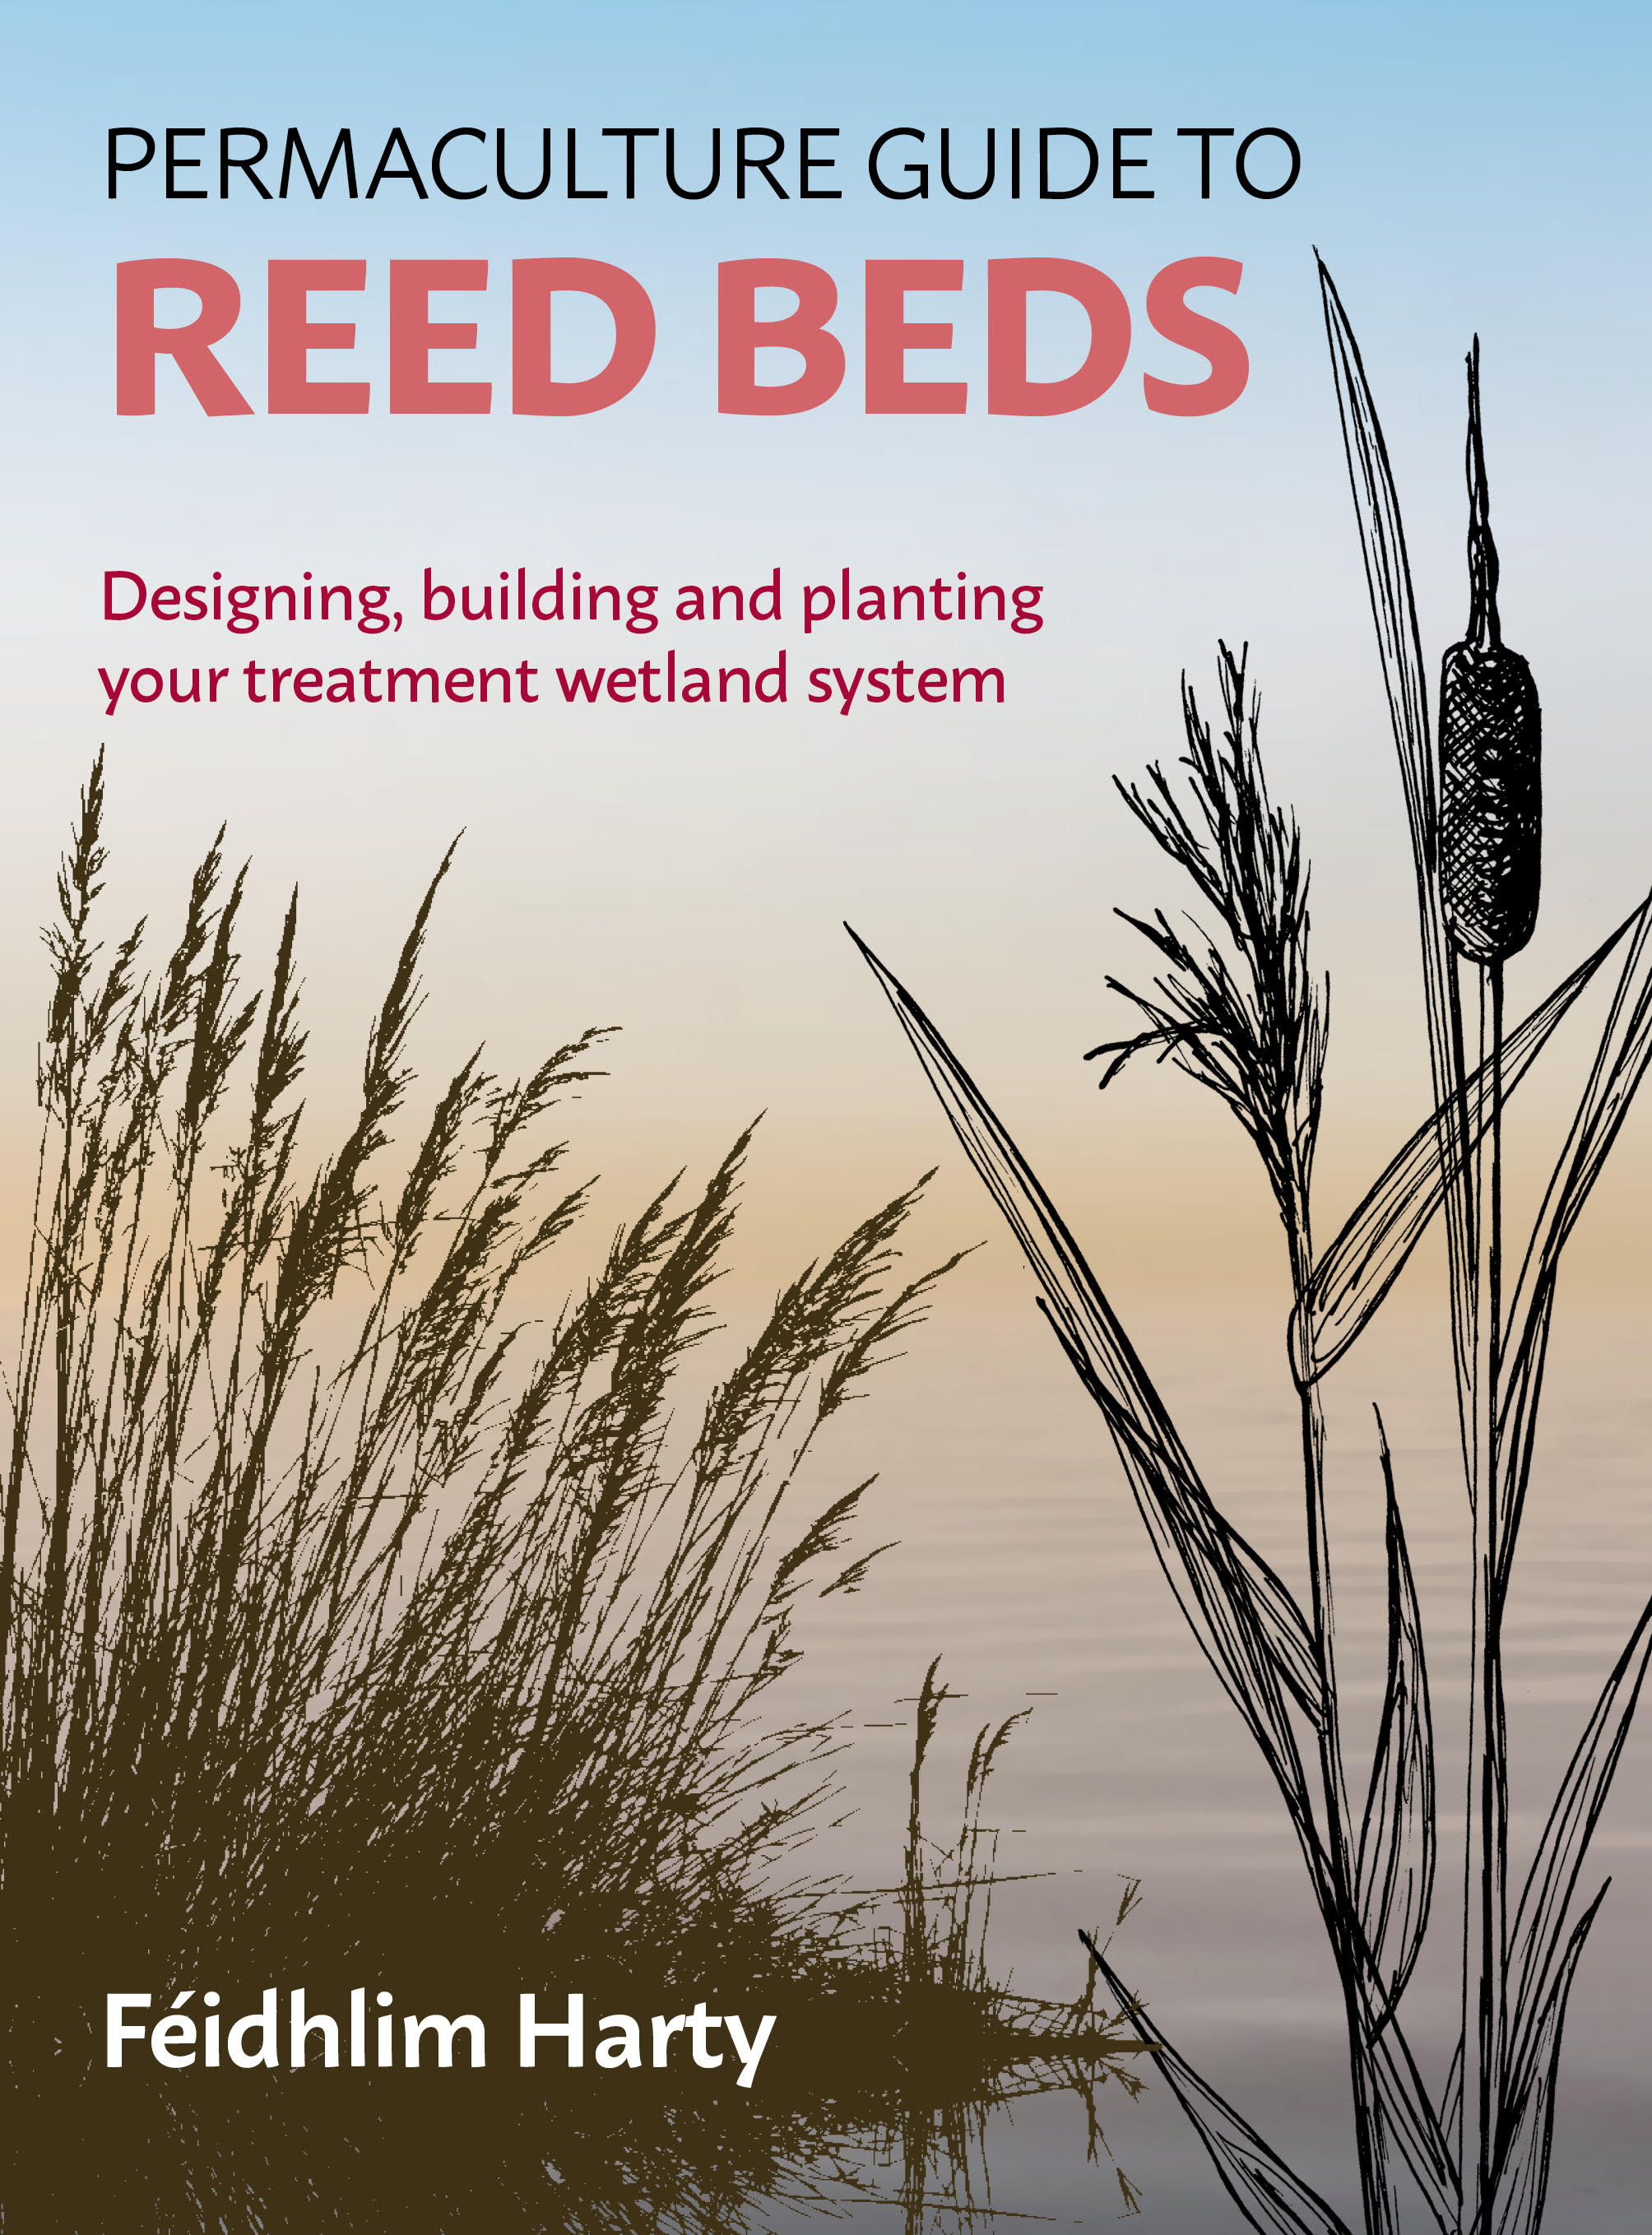 Permaculture Guide to Reed Beds: Designing, Building and Planting Your Treatment Wetland System by Féidhlim Harty